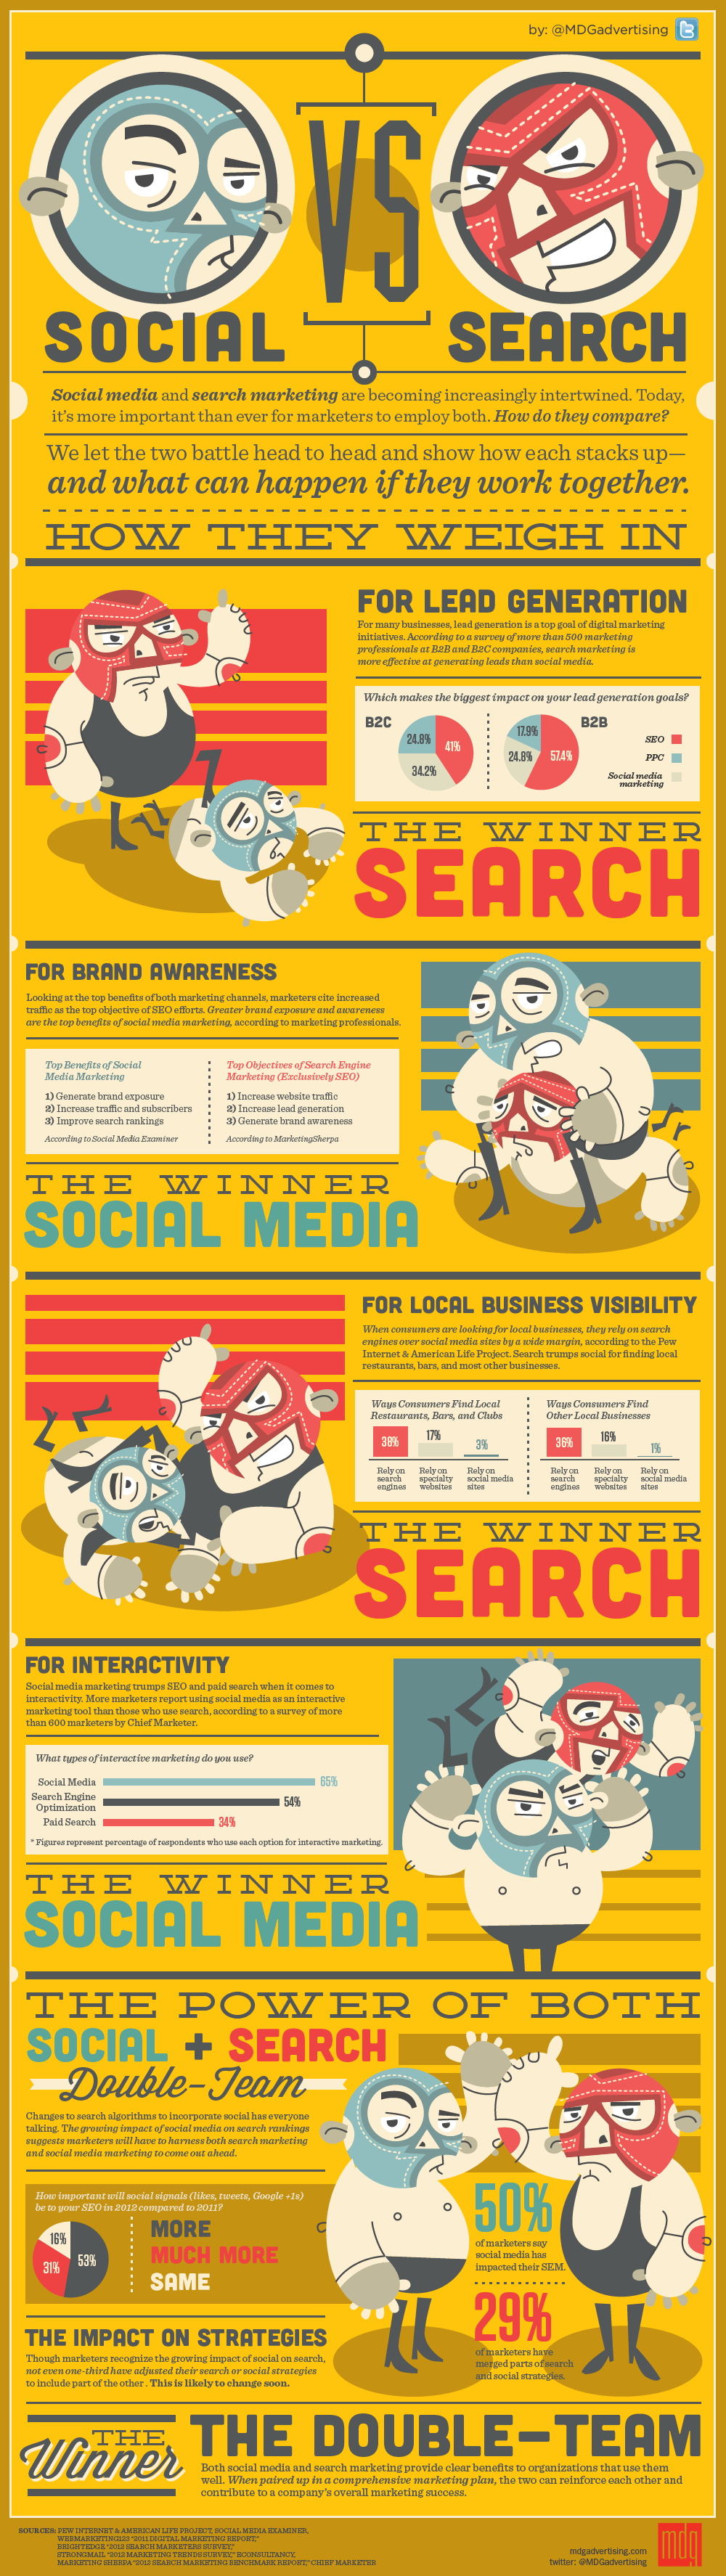 social-vs-search-infographic